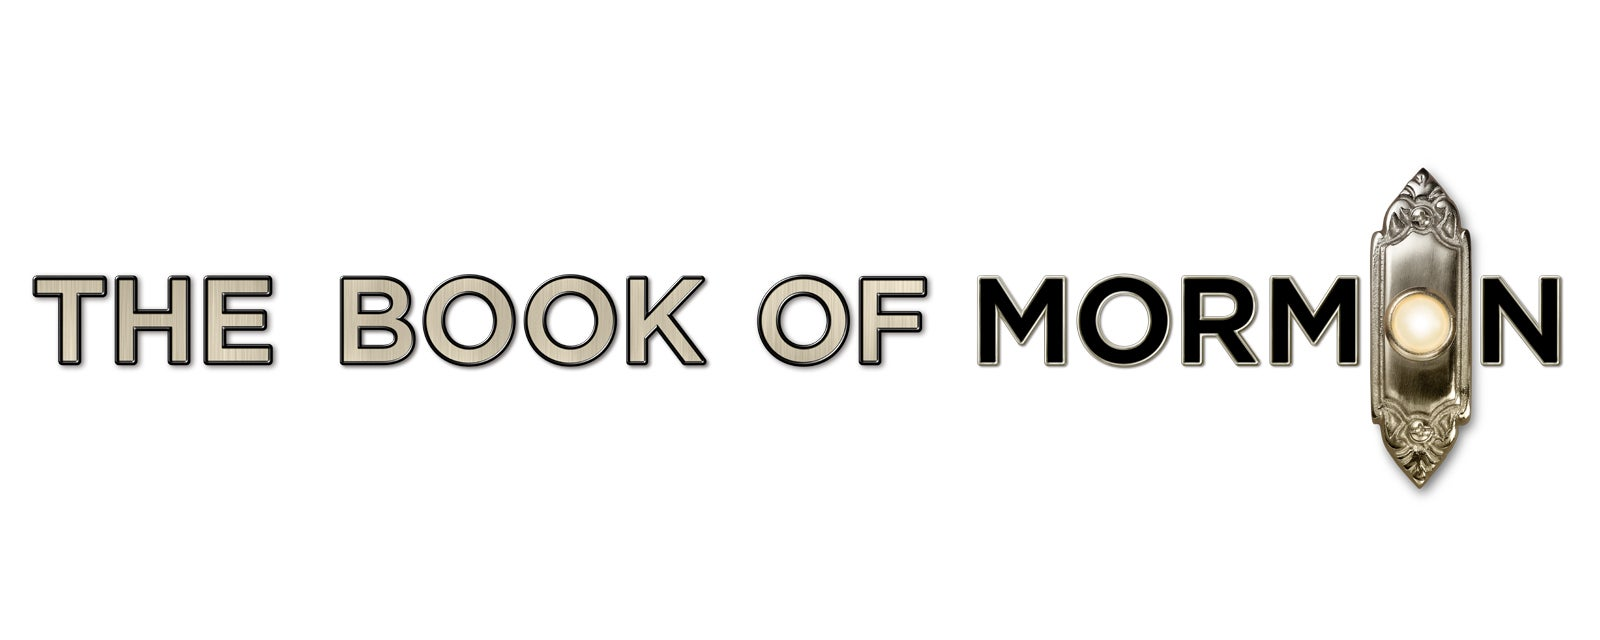 The book of mormon hollywood pantages - The book of mormon box office ...